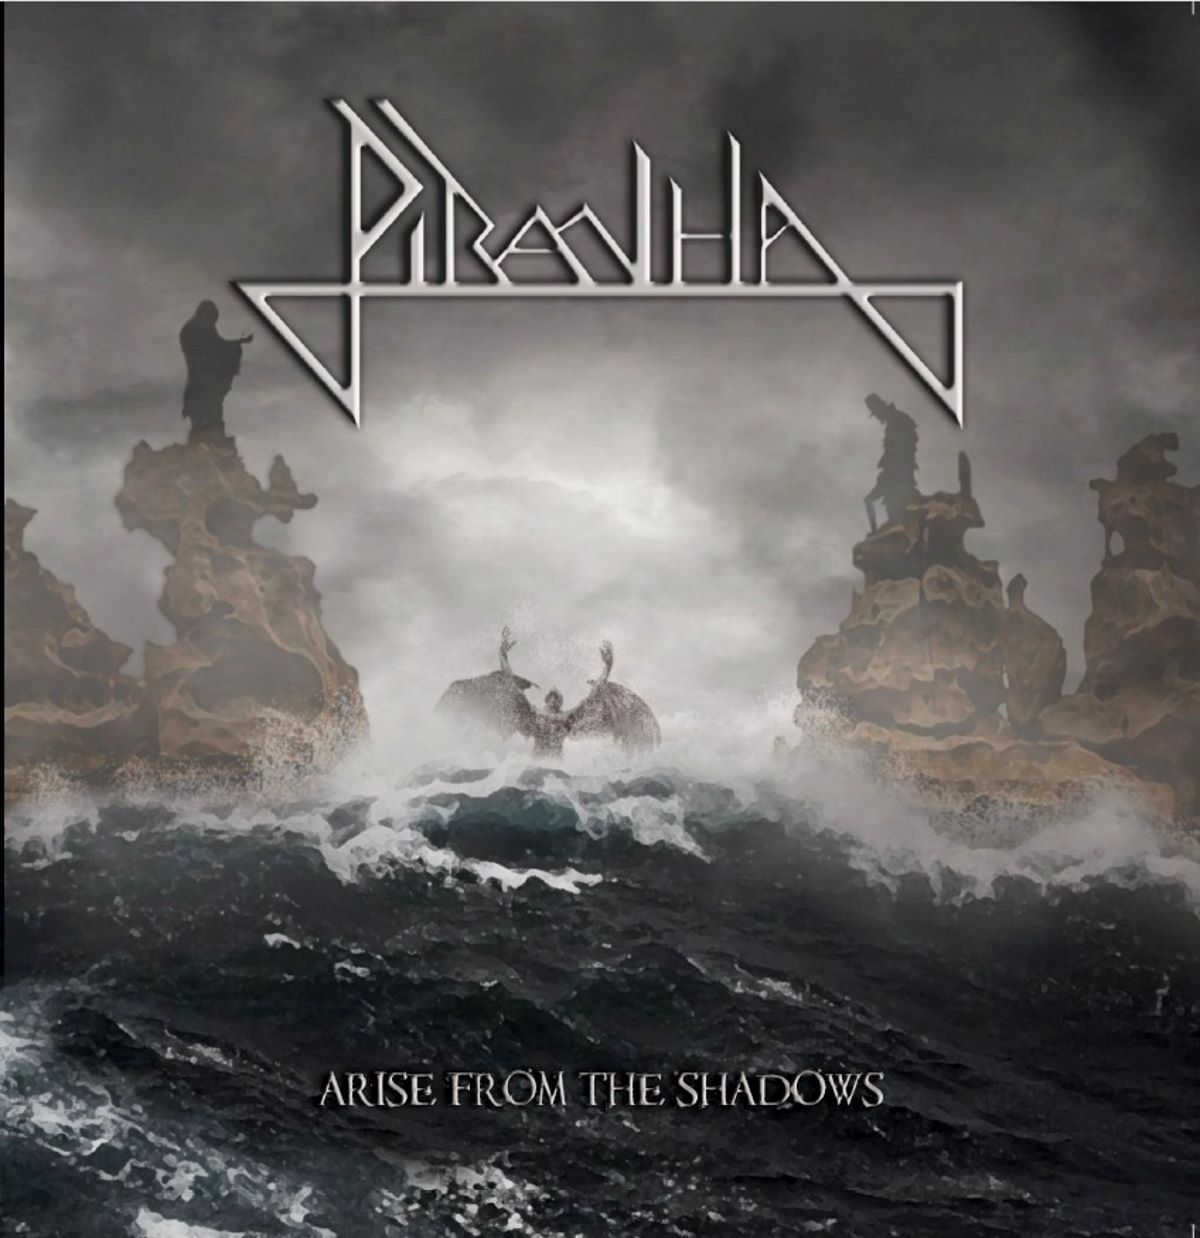 Piranha - Arise from the shadows - album cover